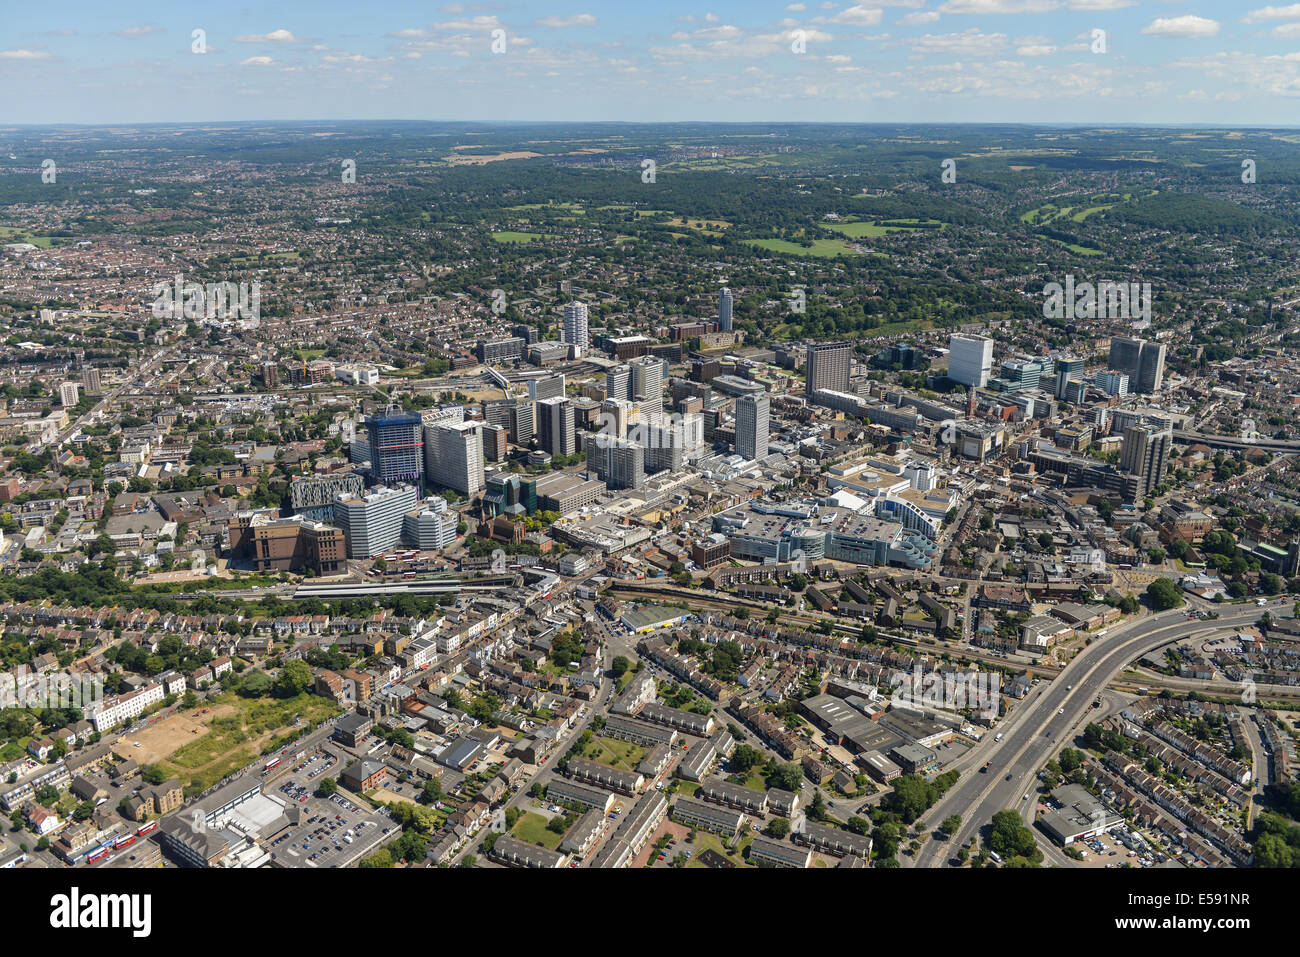 An aerial view of the centre of Croydon with Lloyd Park and Coombe Park visible in the distance. - Stock Image